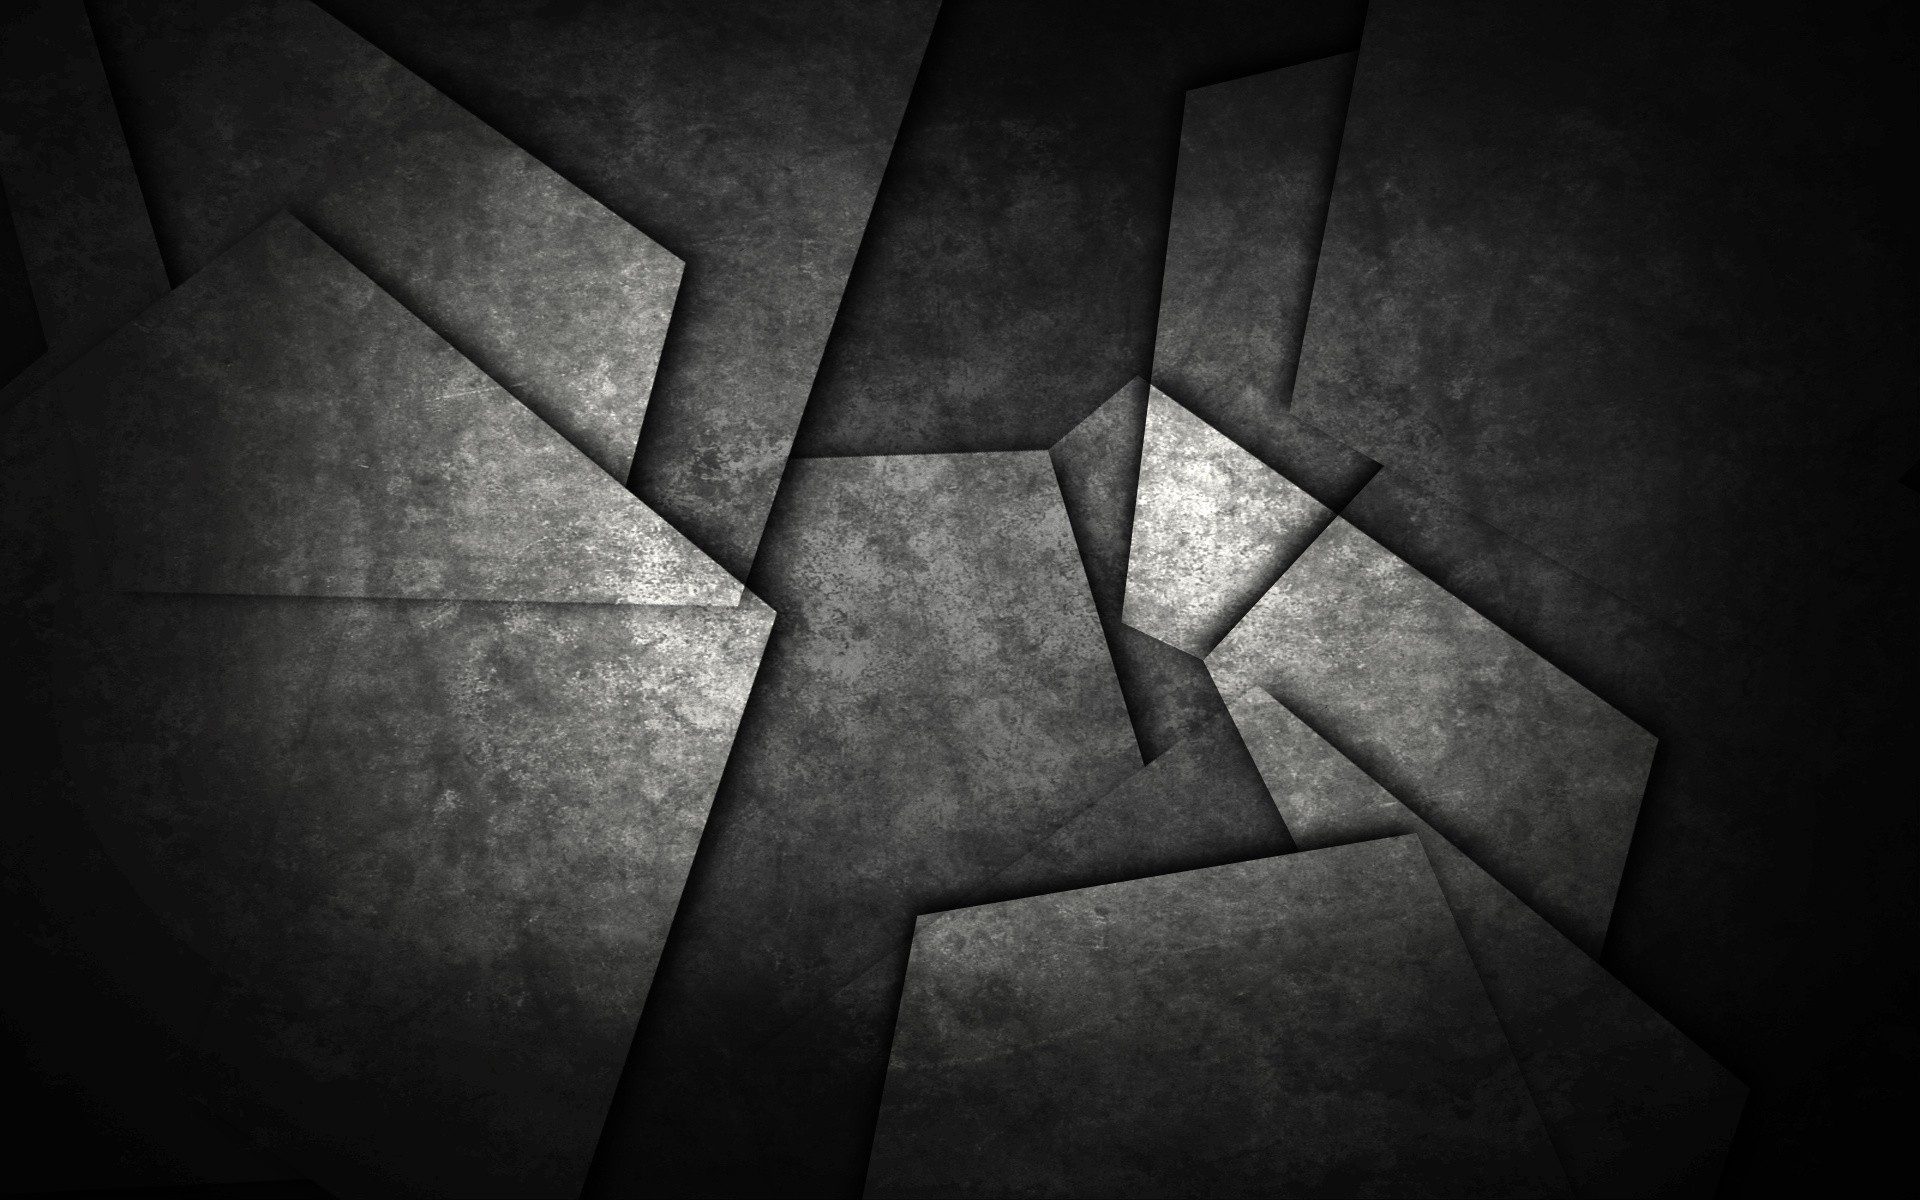 Black And White Abstract Wallpapers Hd Wallpapers 1920x1200